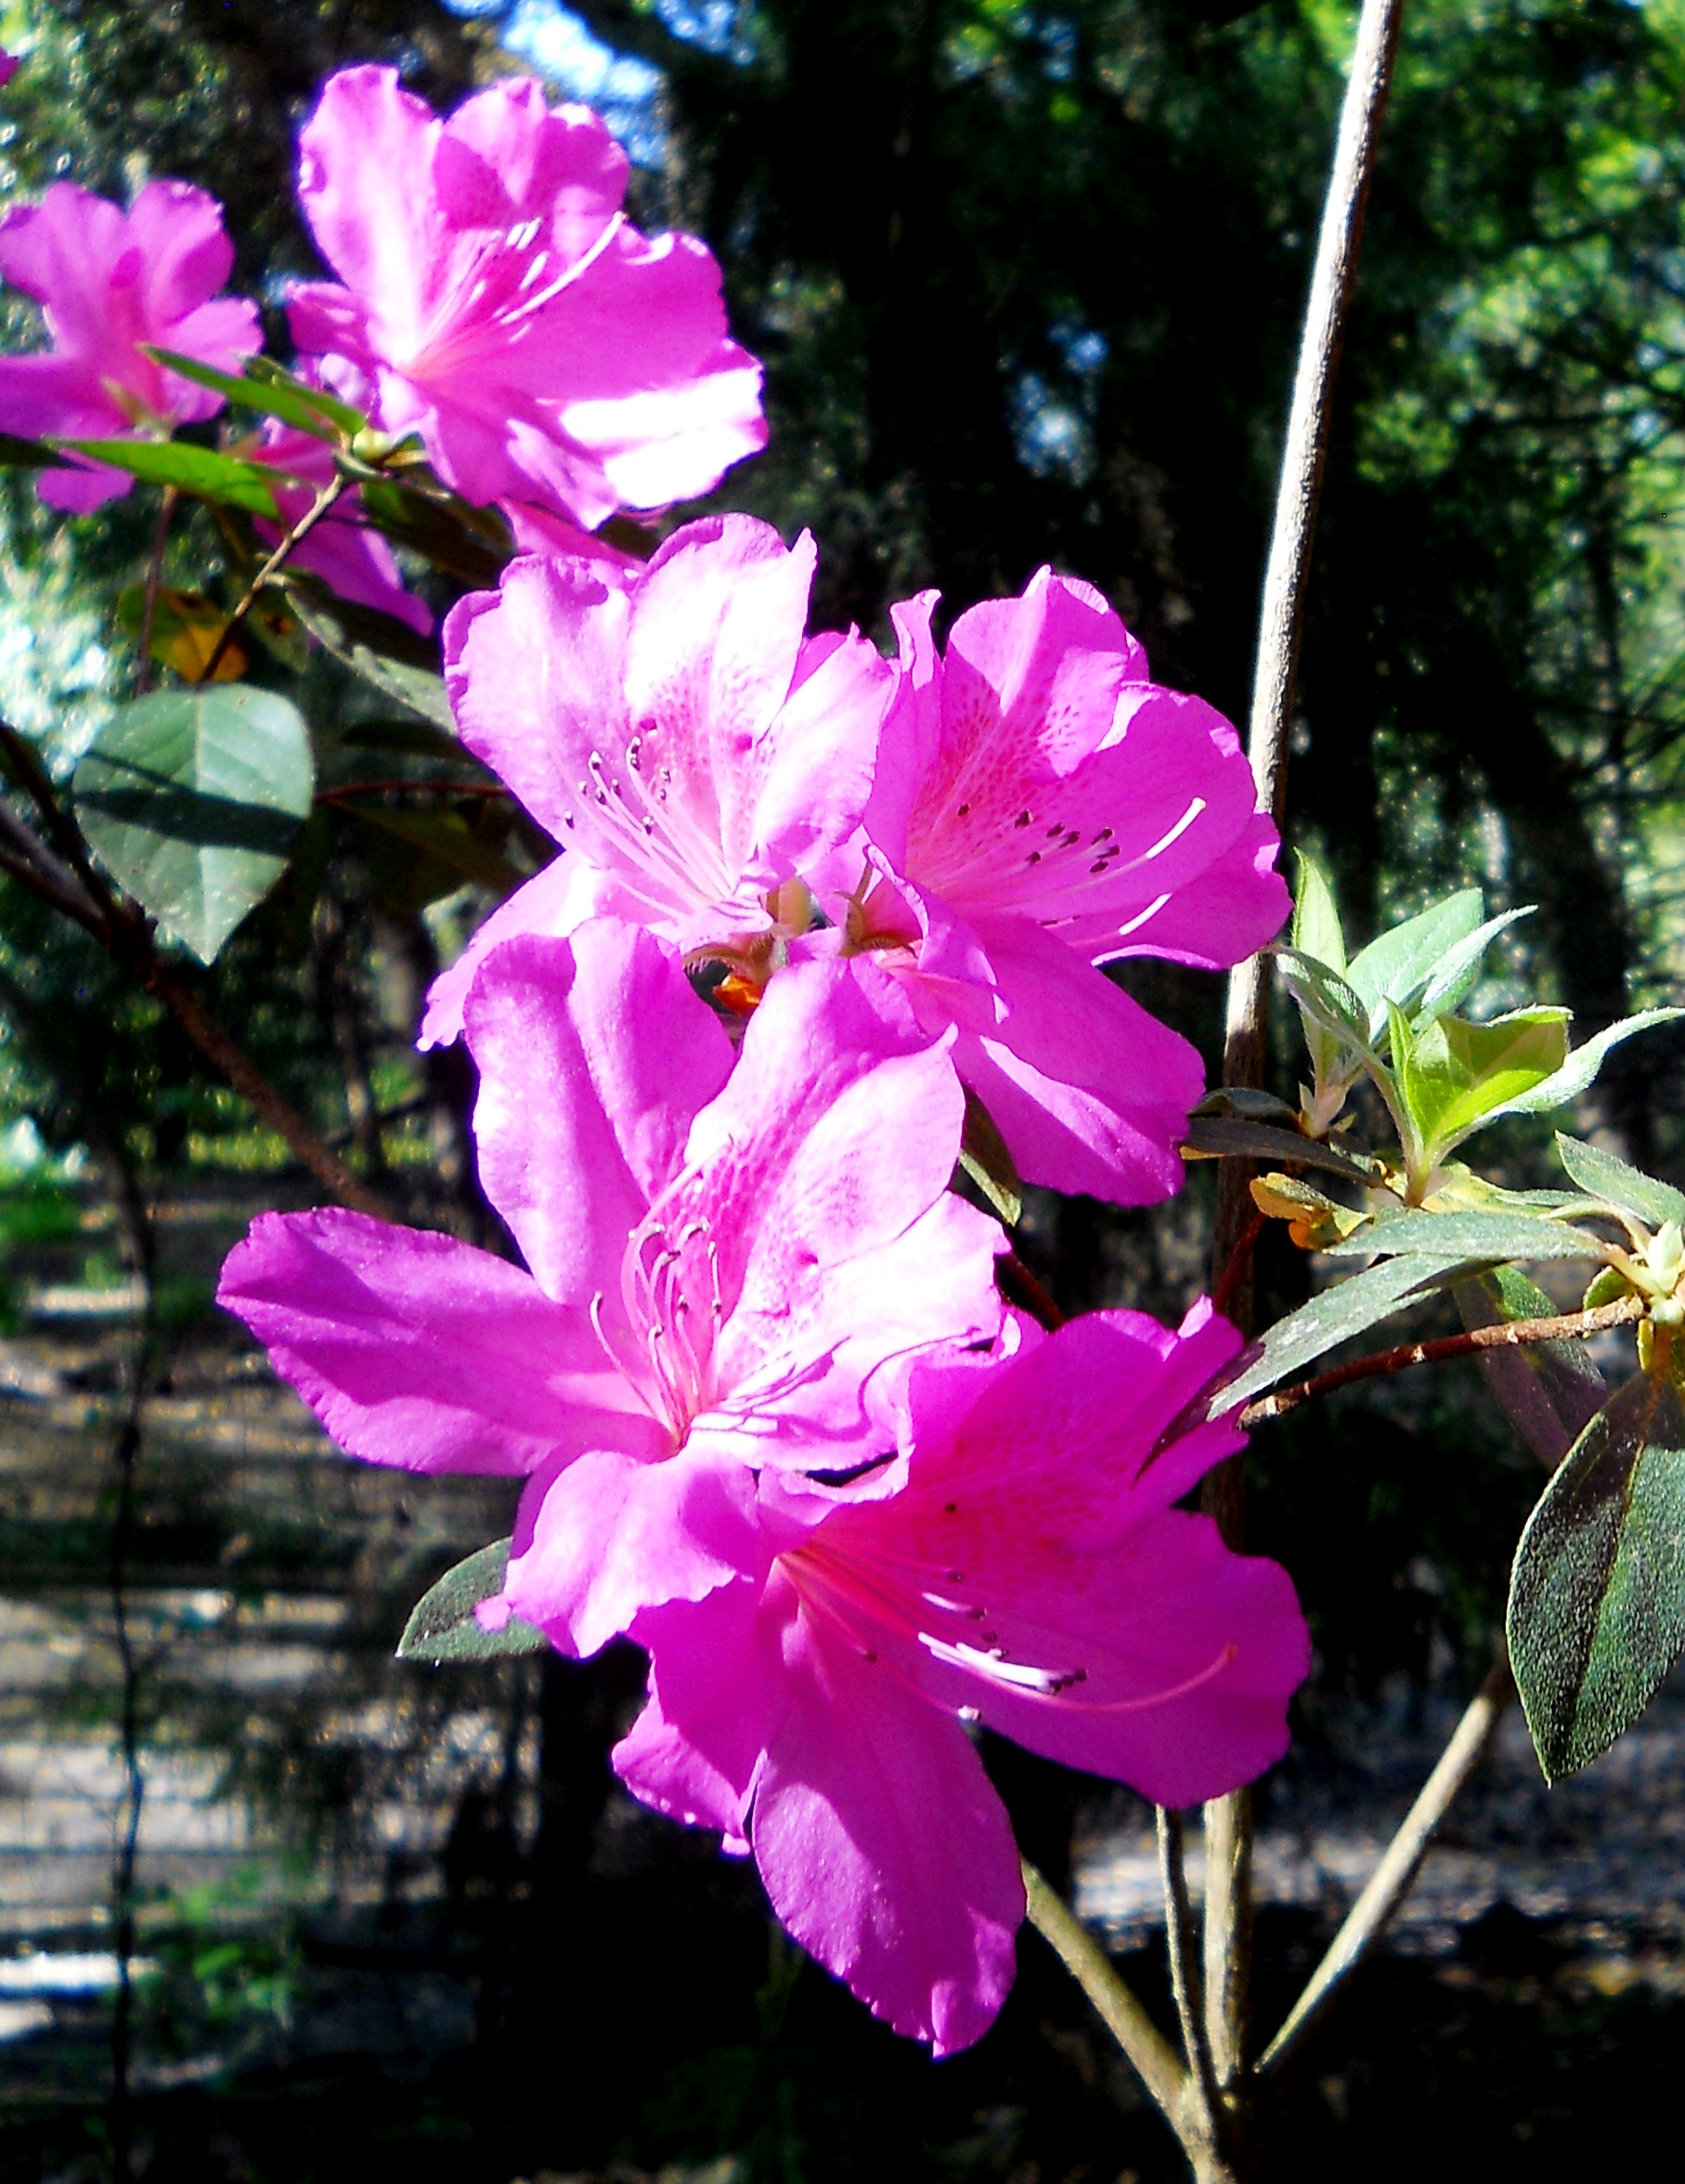 https://bearspawprint.files.wordpress.com/2014/03/vernal-sunshine-on-azaleas-march-2014-2014-03-25-013-2.jpg